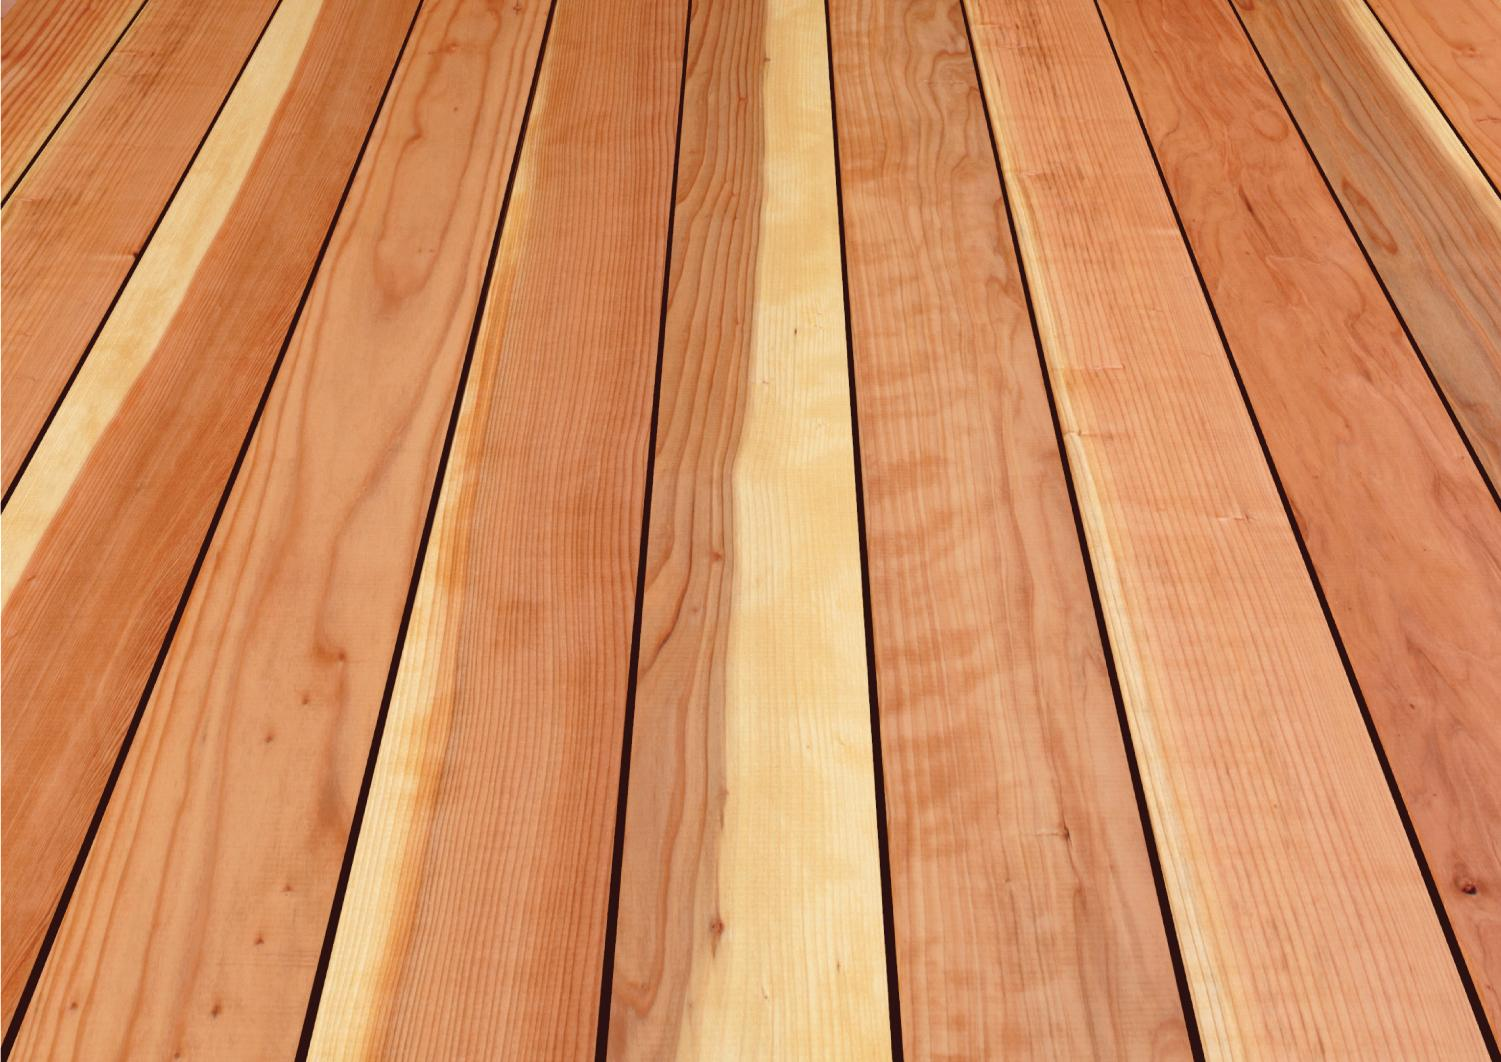 California redwood co heritage collection decking for Longest decking boards